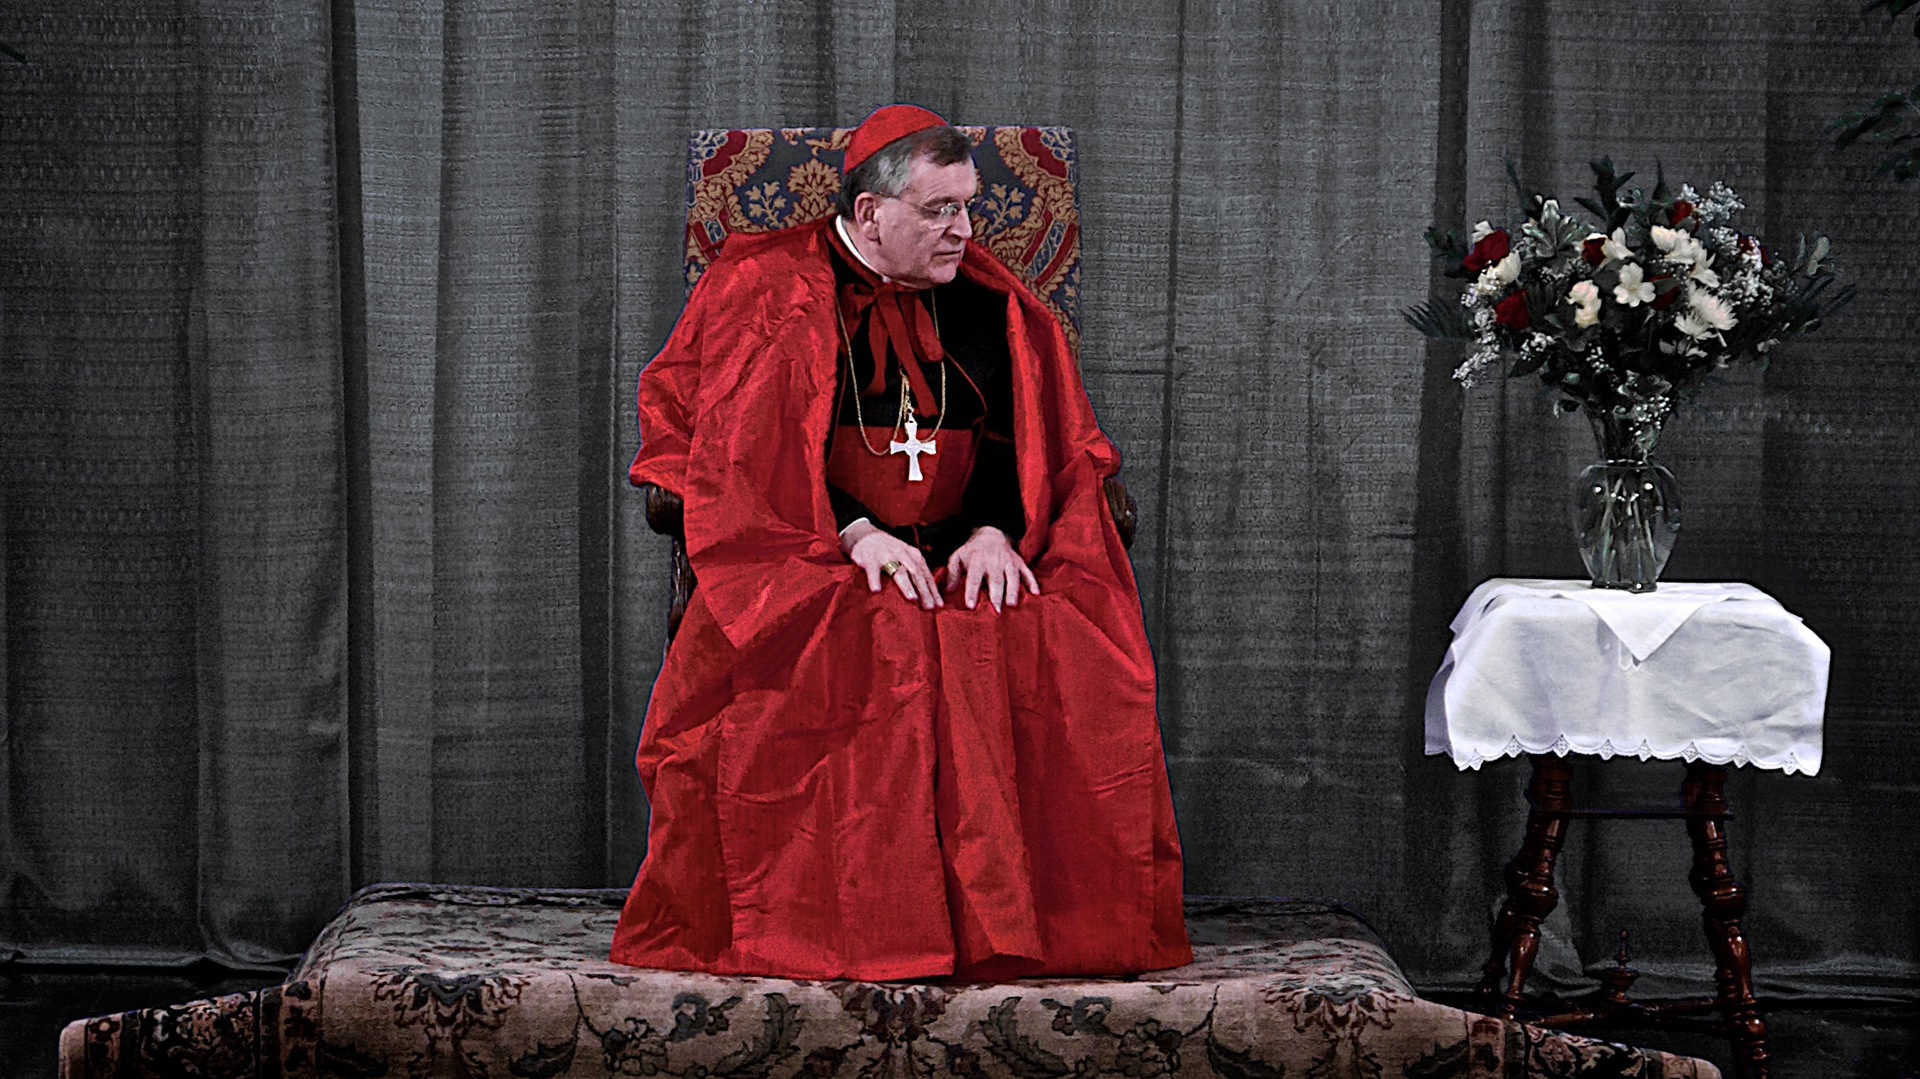 Le cardinal américain Raymond Léo Burke (flickr/pbr-photos/CC BY-NC-ND 2.0)